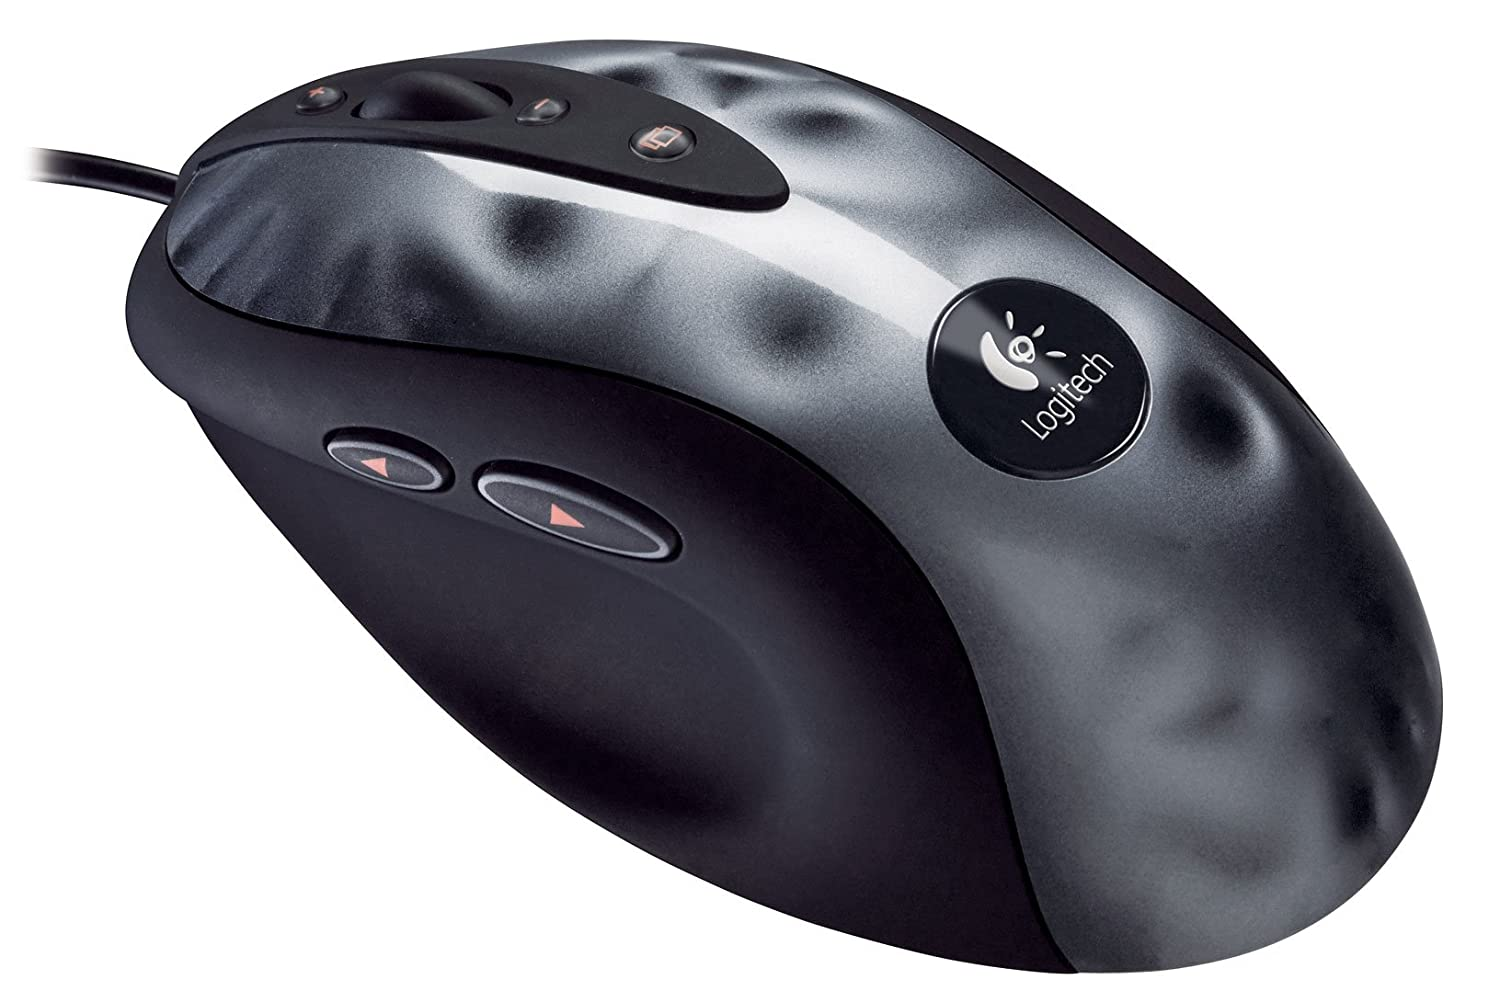 mx518 gaming mouse